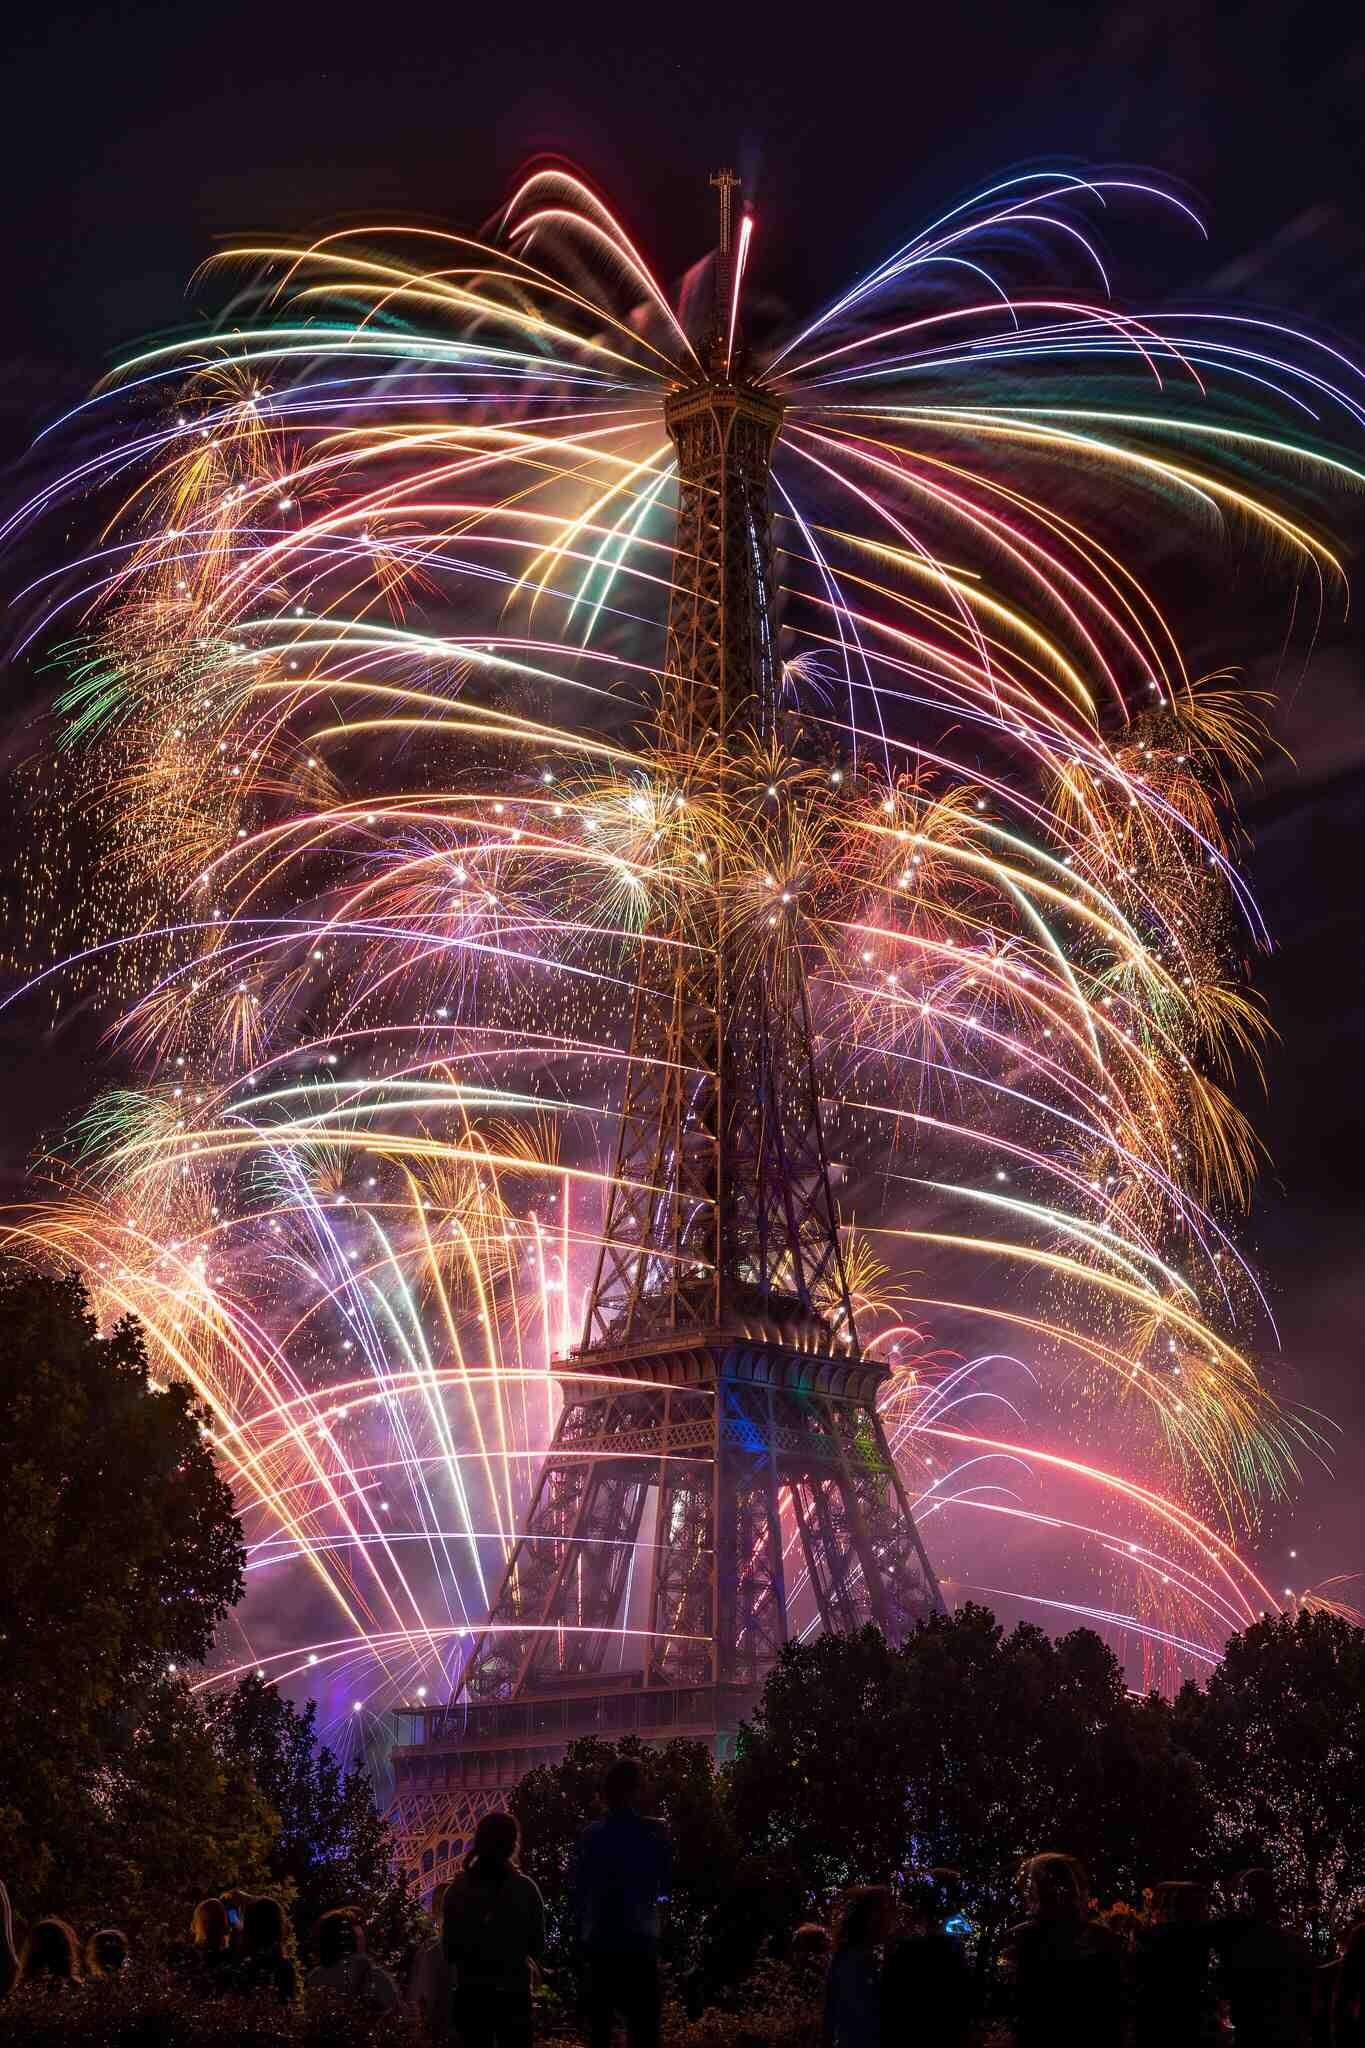 This is an image of the Eiffel Tower last night http://t.co/liympXtUl7